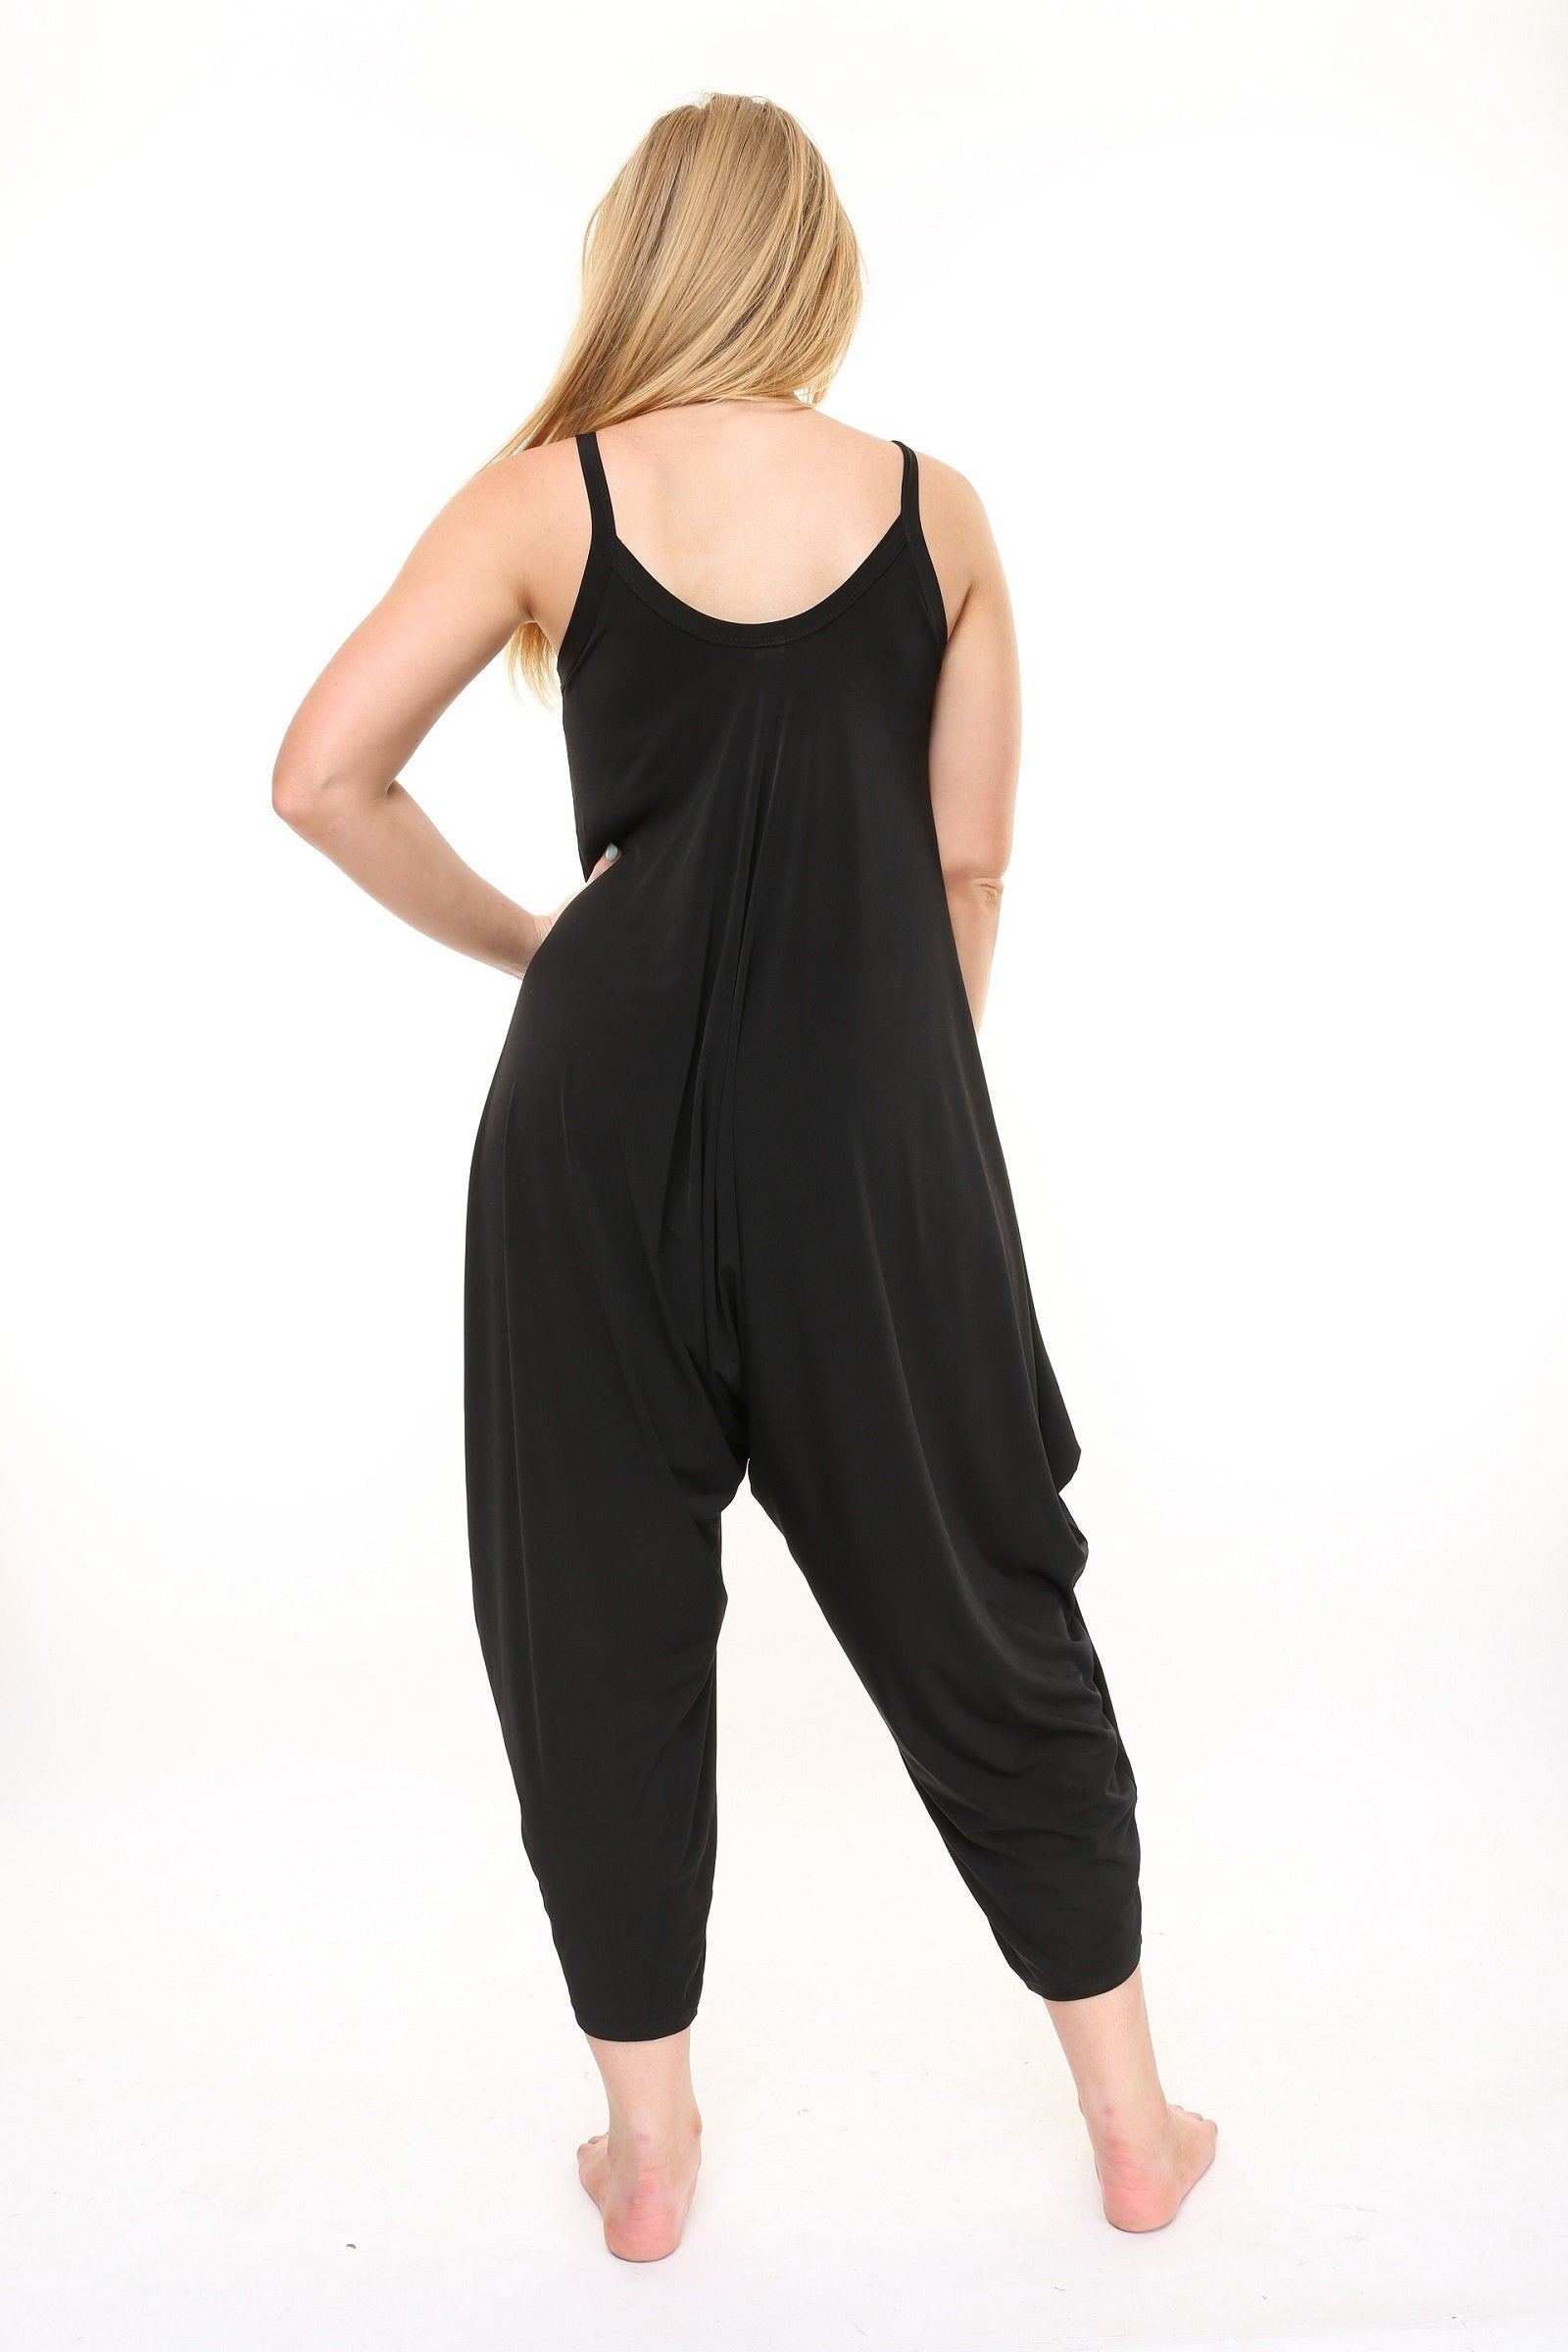 pilates apparel, yogawear, pilateswear